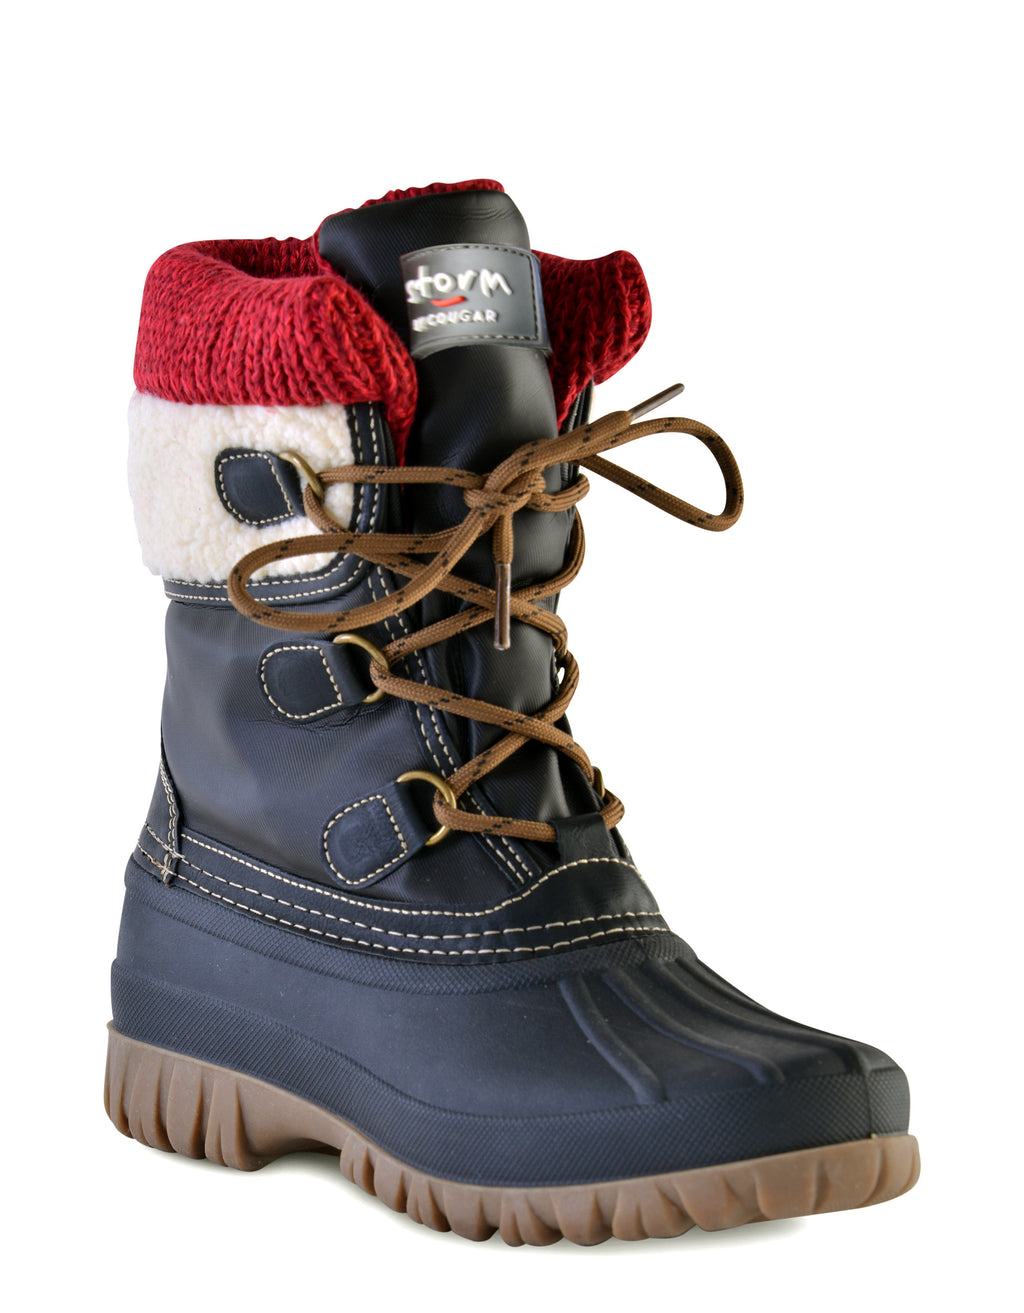 Creek Snow Boot